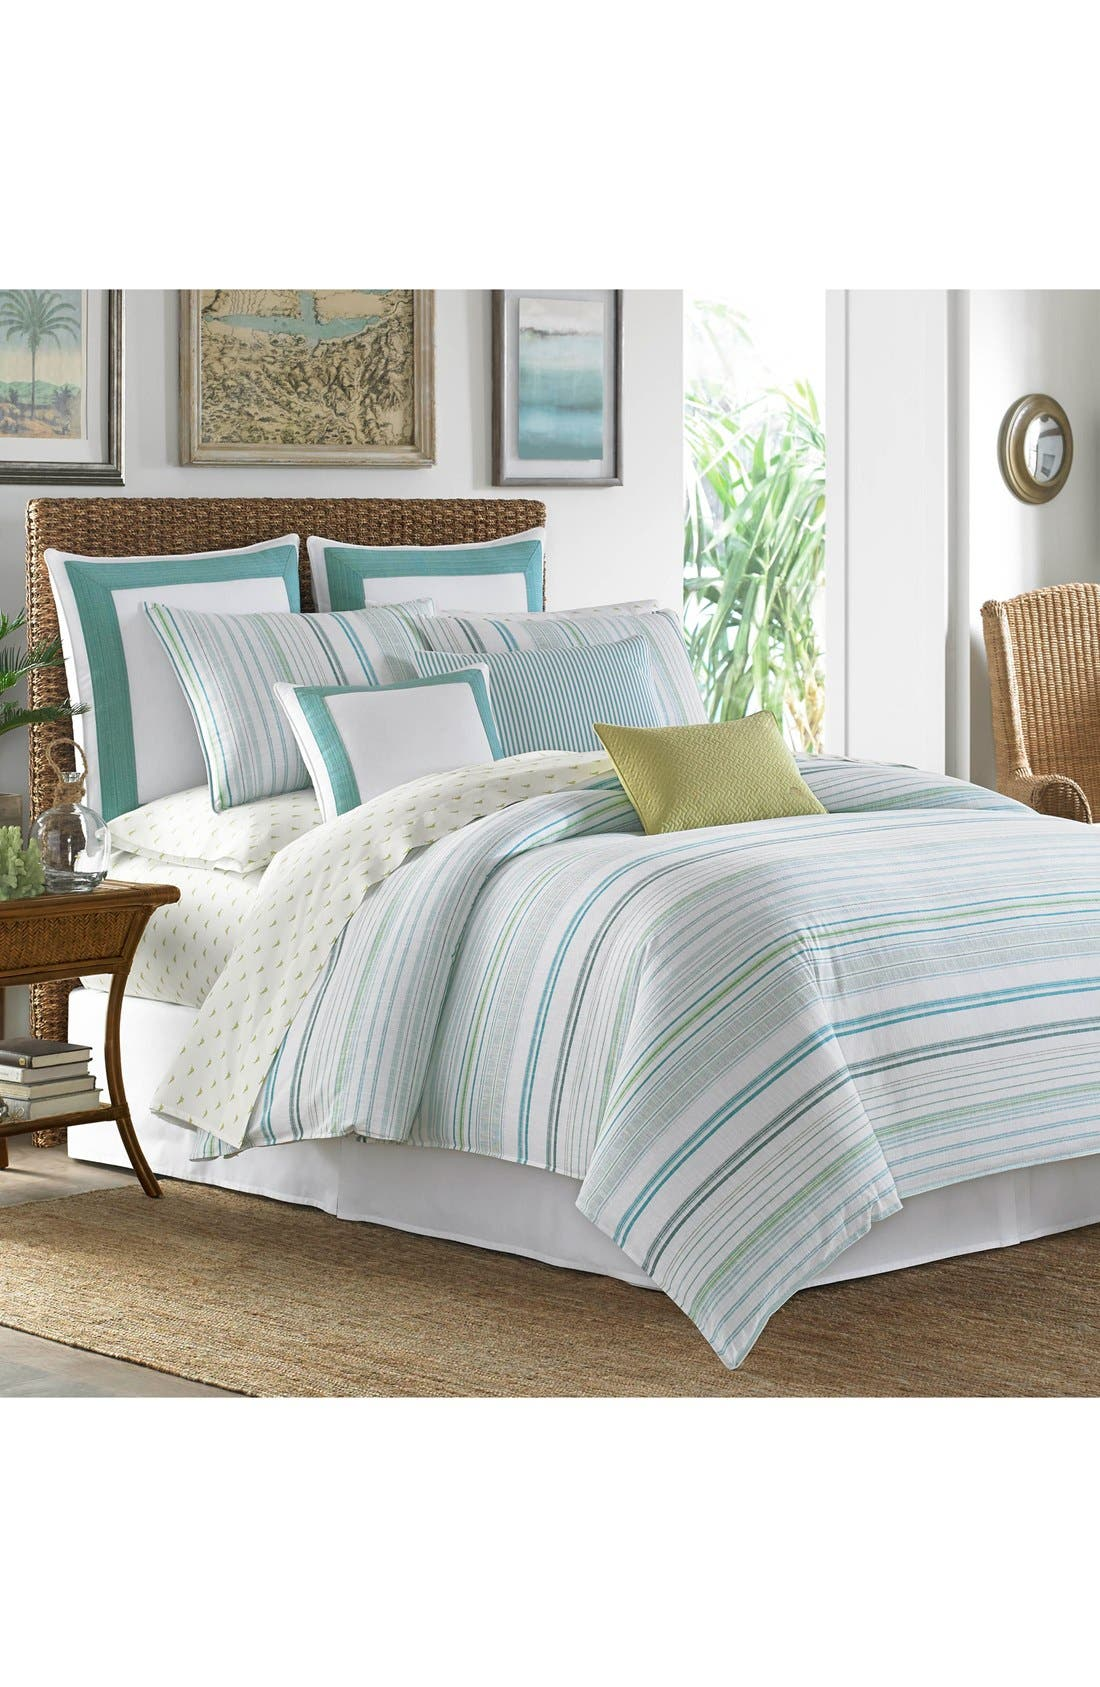 'La Scala Breezer' Duvet Cover,                             Alternate thumbnail 2, color,                             440